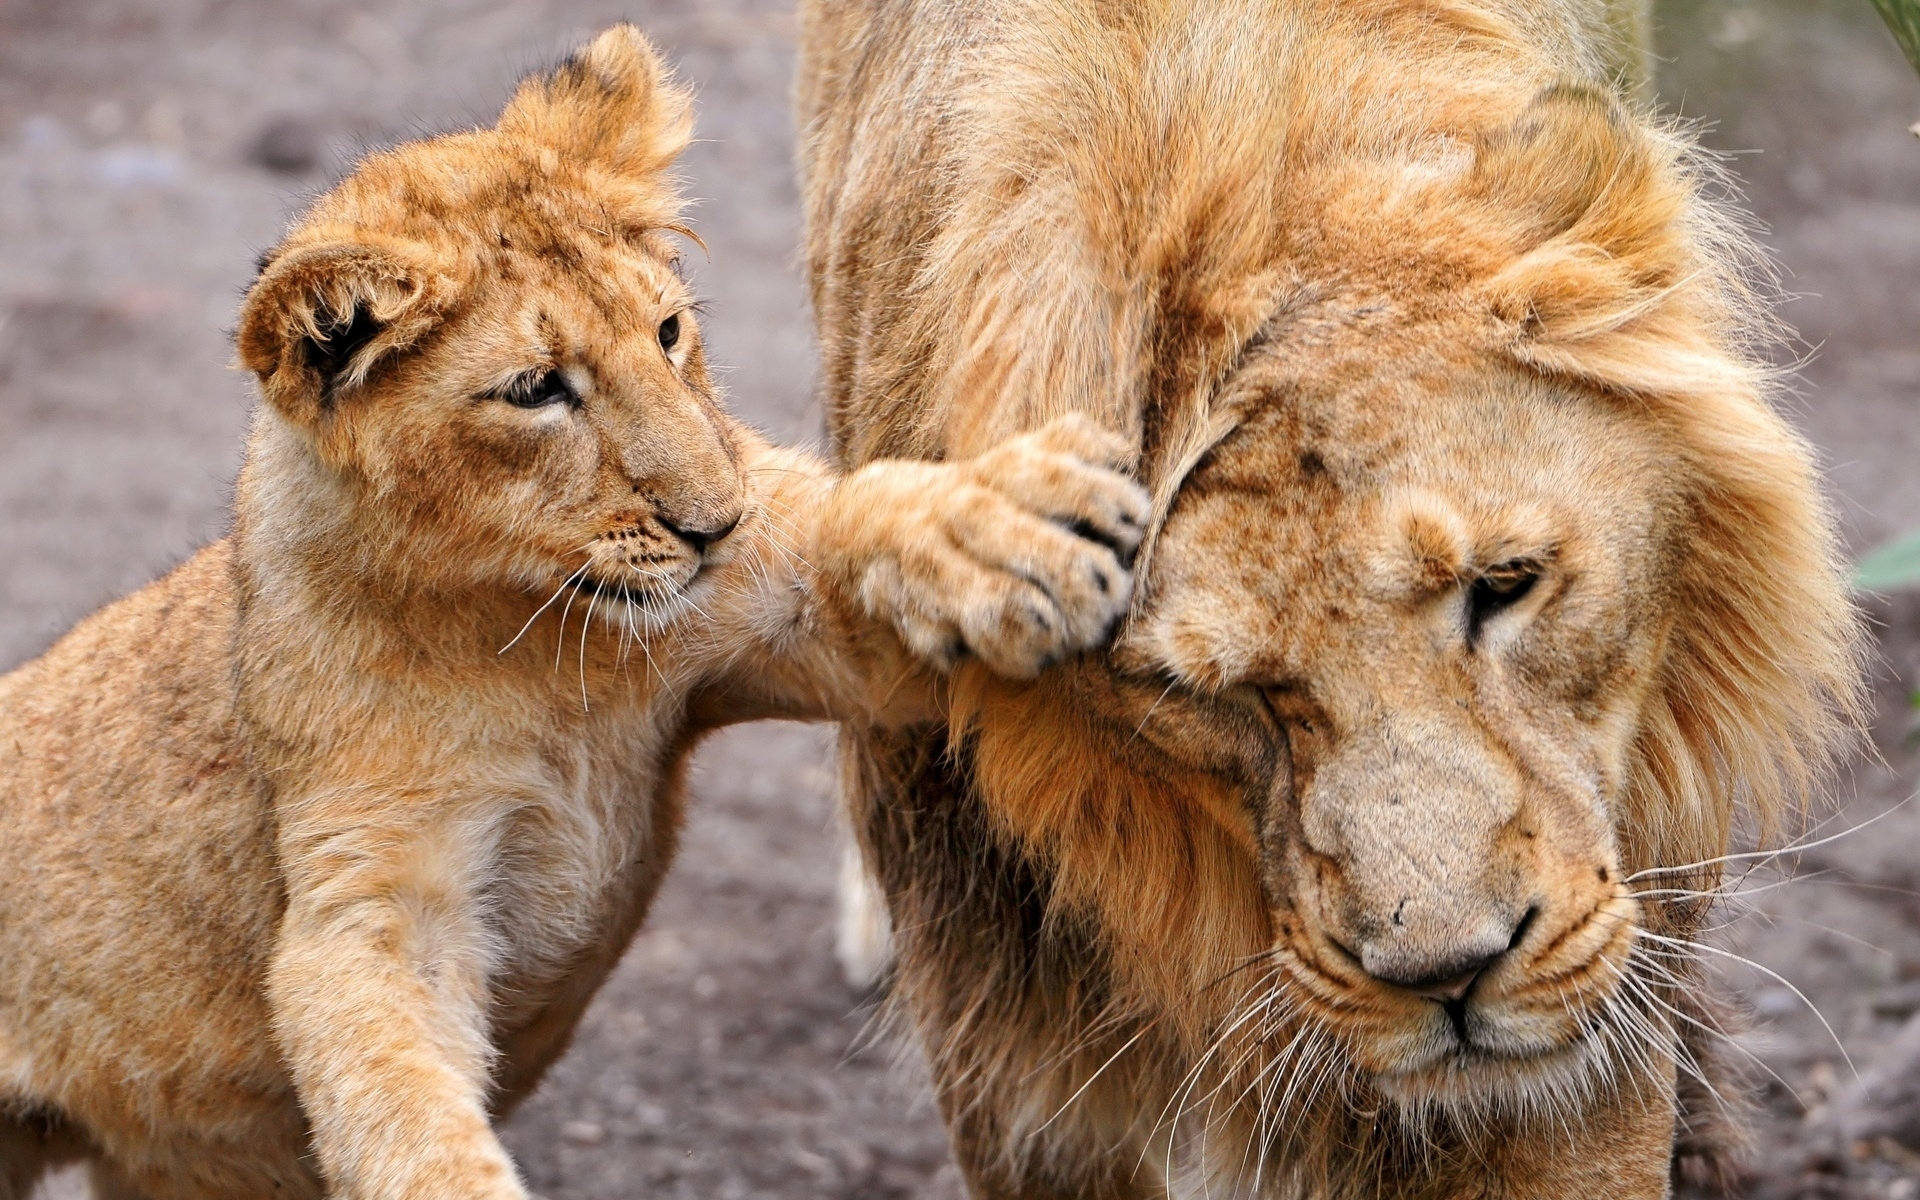 45737 download wallpaper Animals, Tigers screensavers and pictures for free